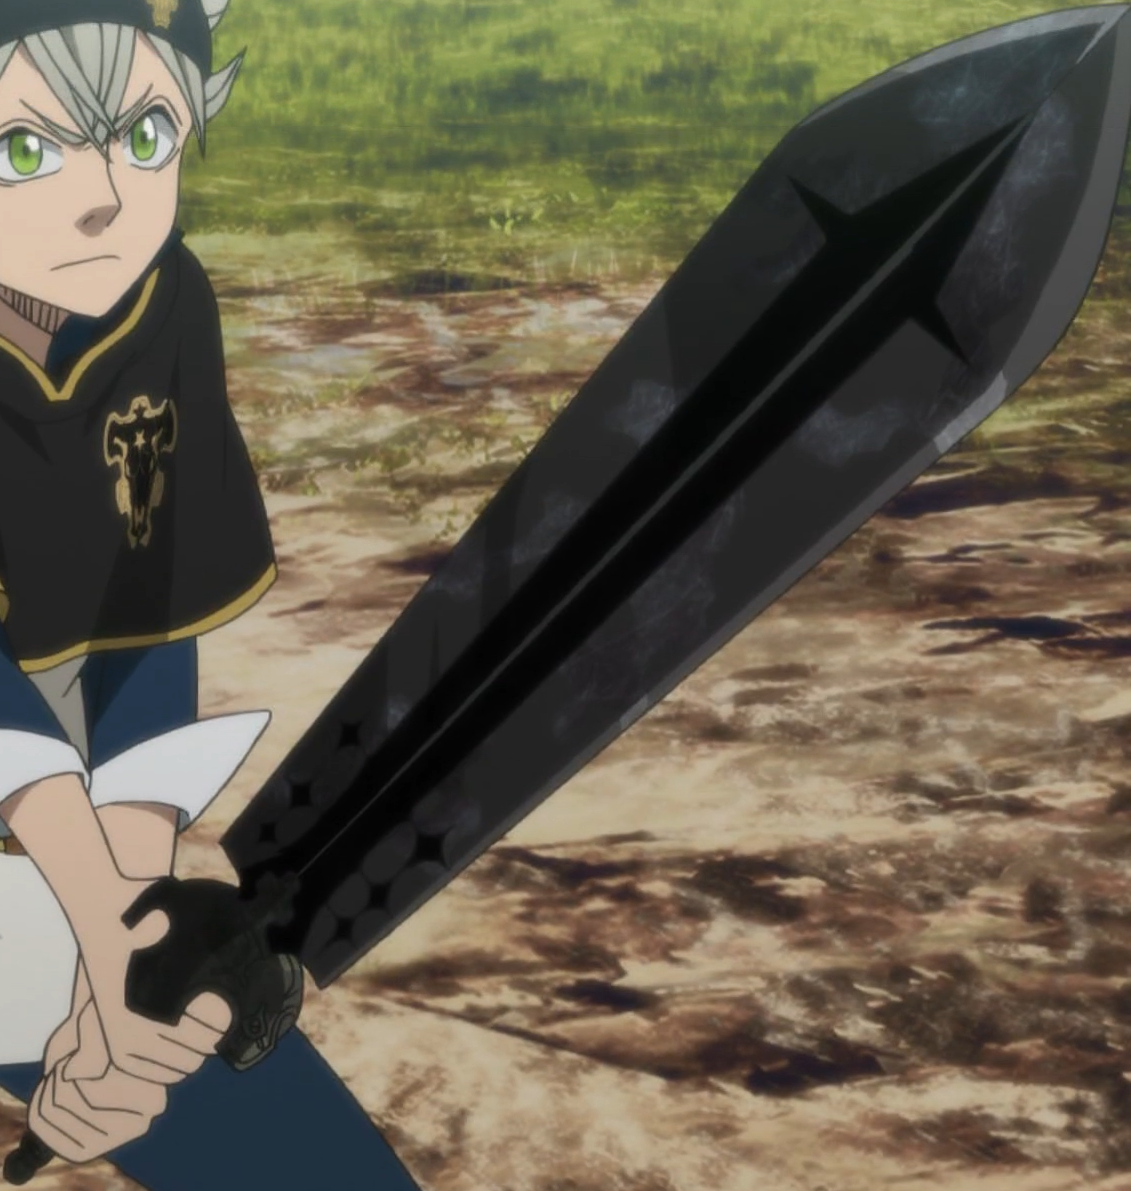 Demon Dweller Sword Black Clover Wiki Fandom Julius nova chrono vs himeji wataru aug 1, 2019 18:03:33 gmt kade17 likes this. demon dweller sword black clover wiki